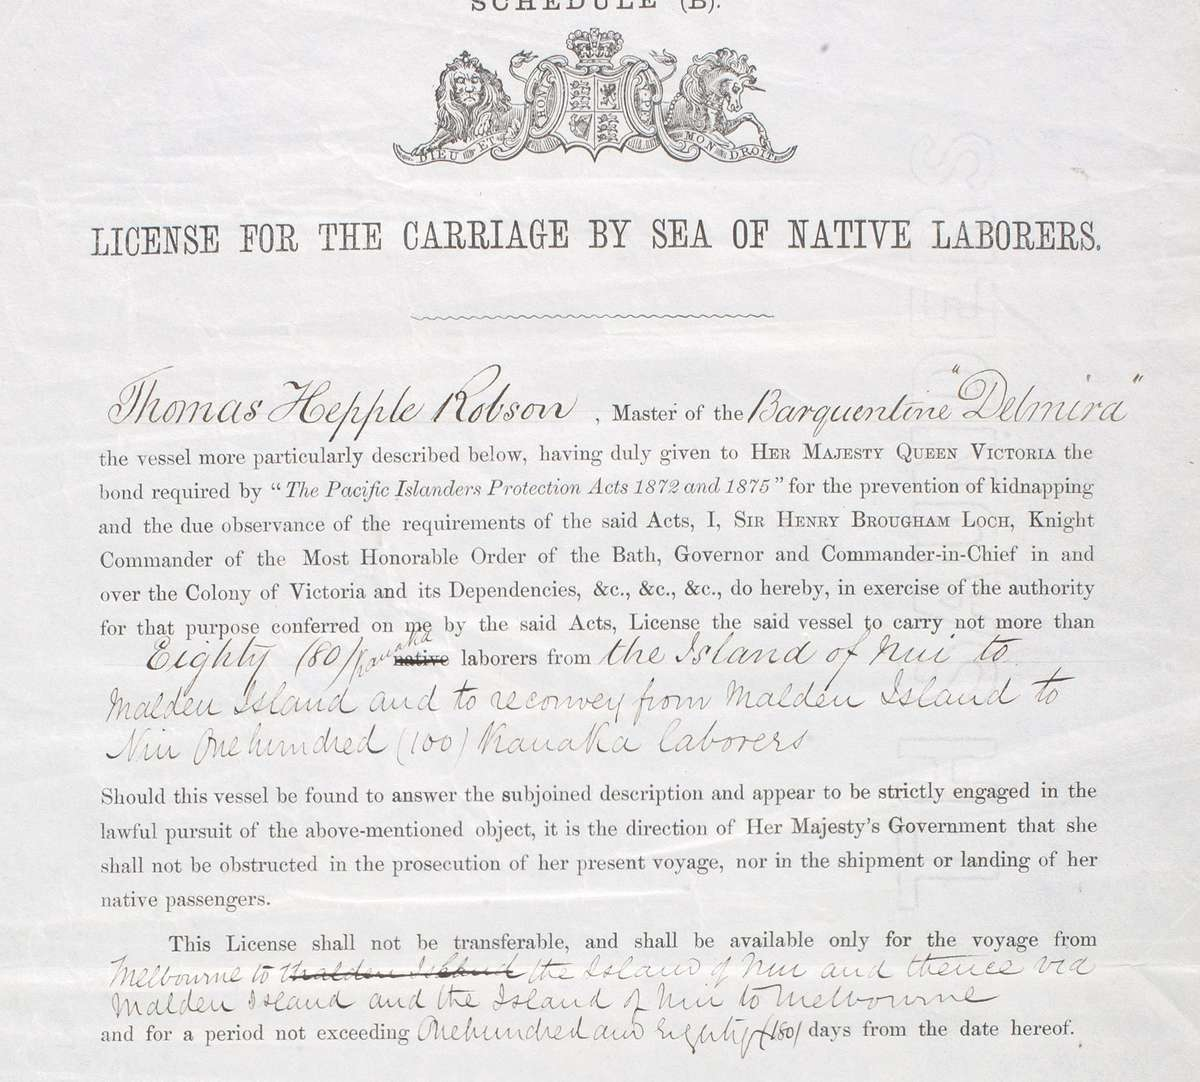 A license issued to Thomas Hepple Robson, Captain of Delmira,